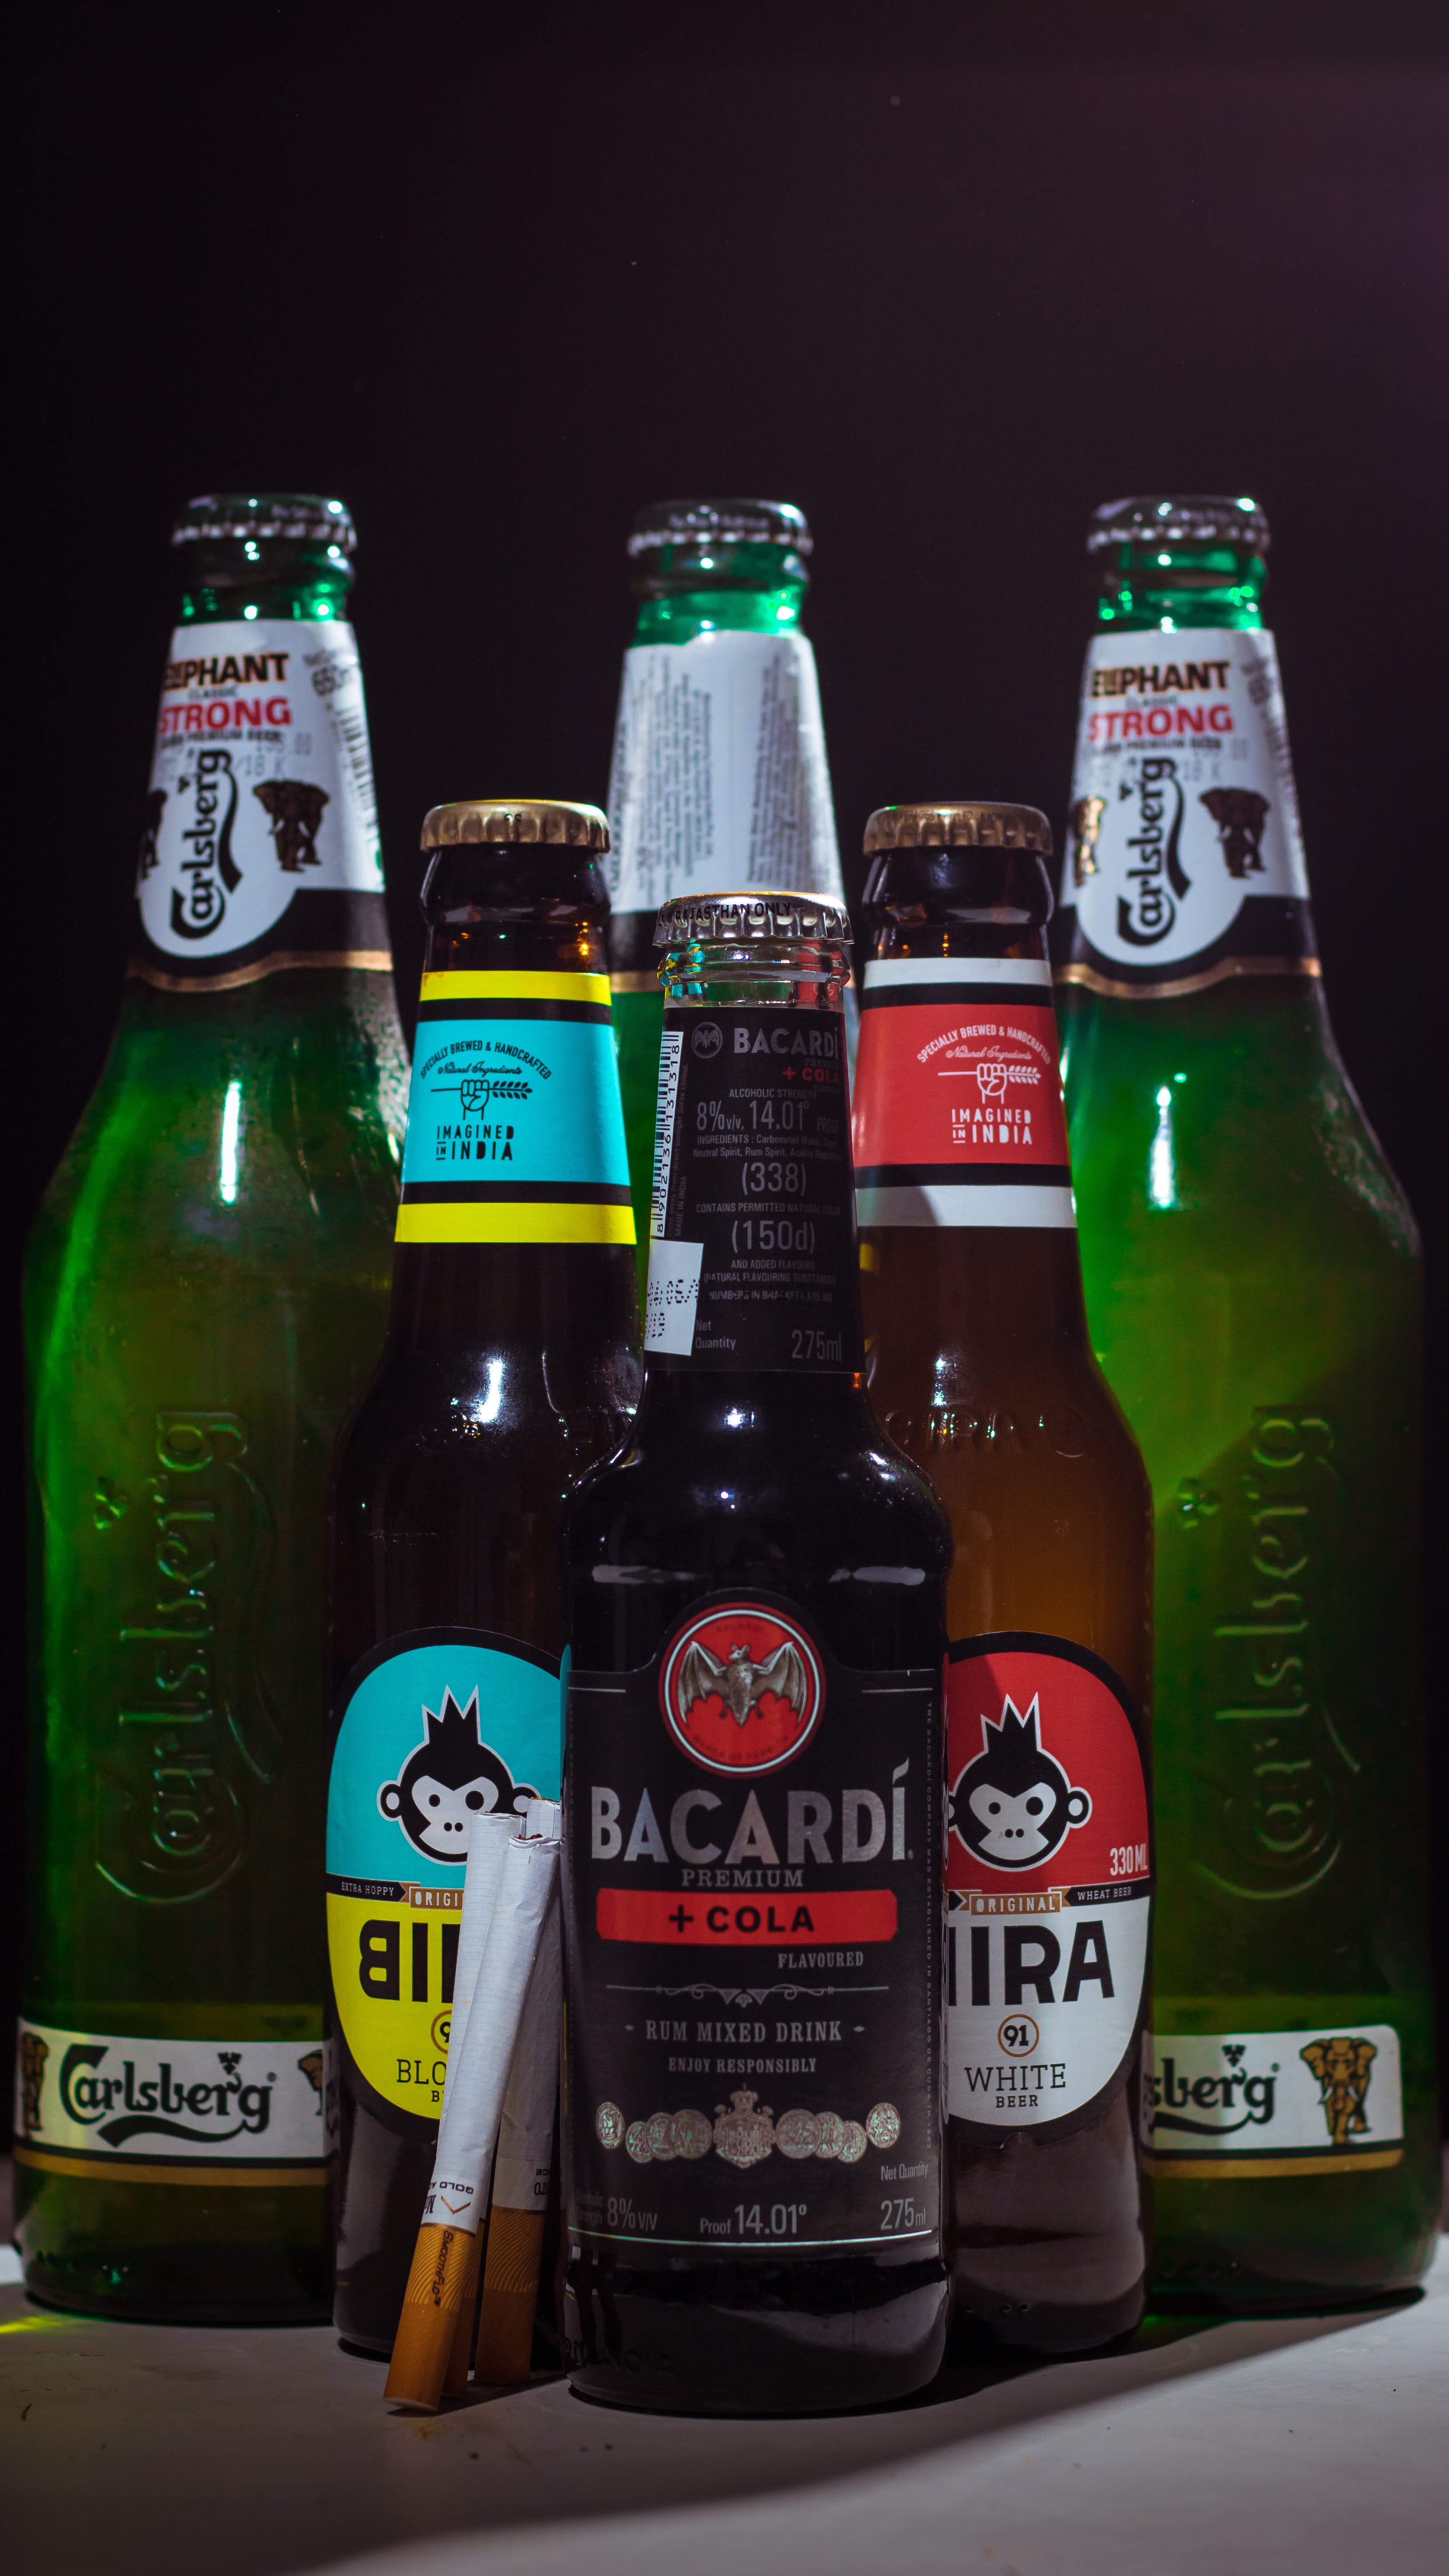 Free stock photo of alcohol, bacardi, bear, BIRA